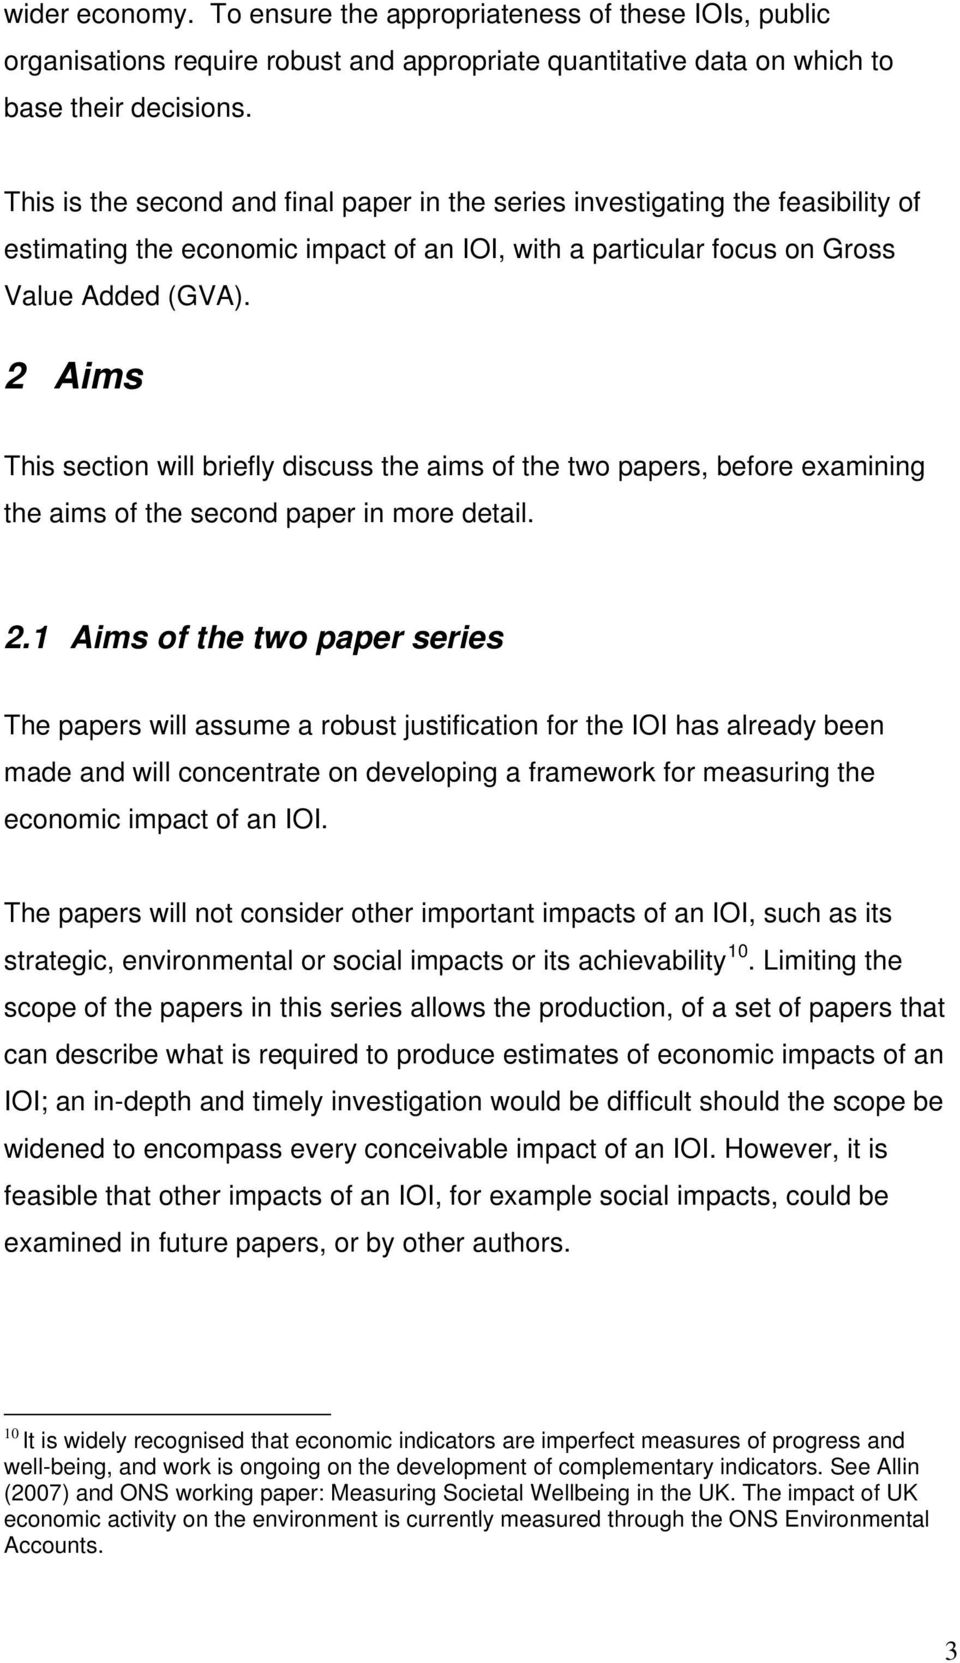 2 Aims This section will briefly discuss the aims of the two papers, before examining the aims of the second paper in more detail. 2.